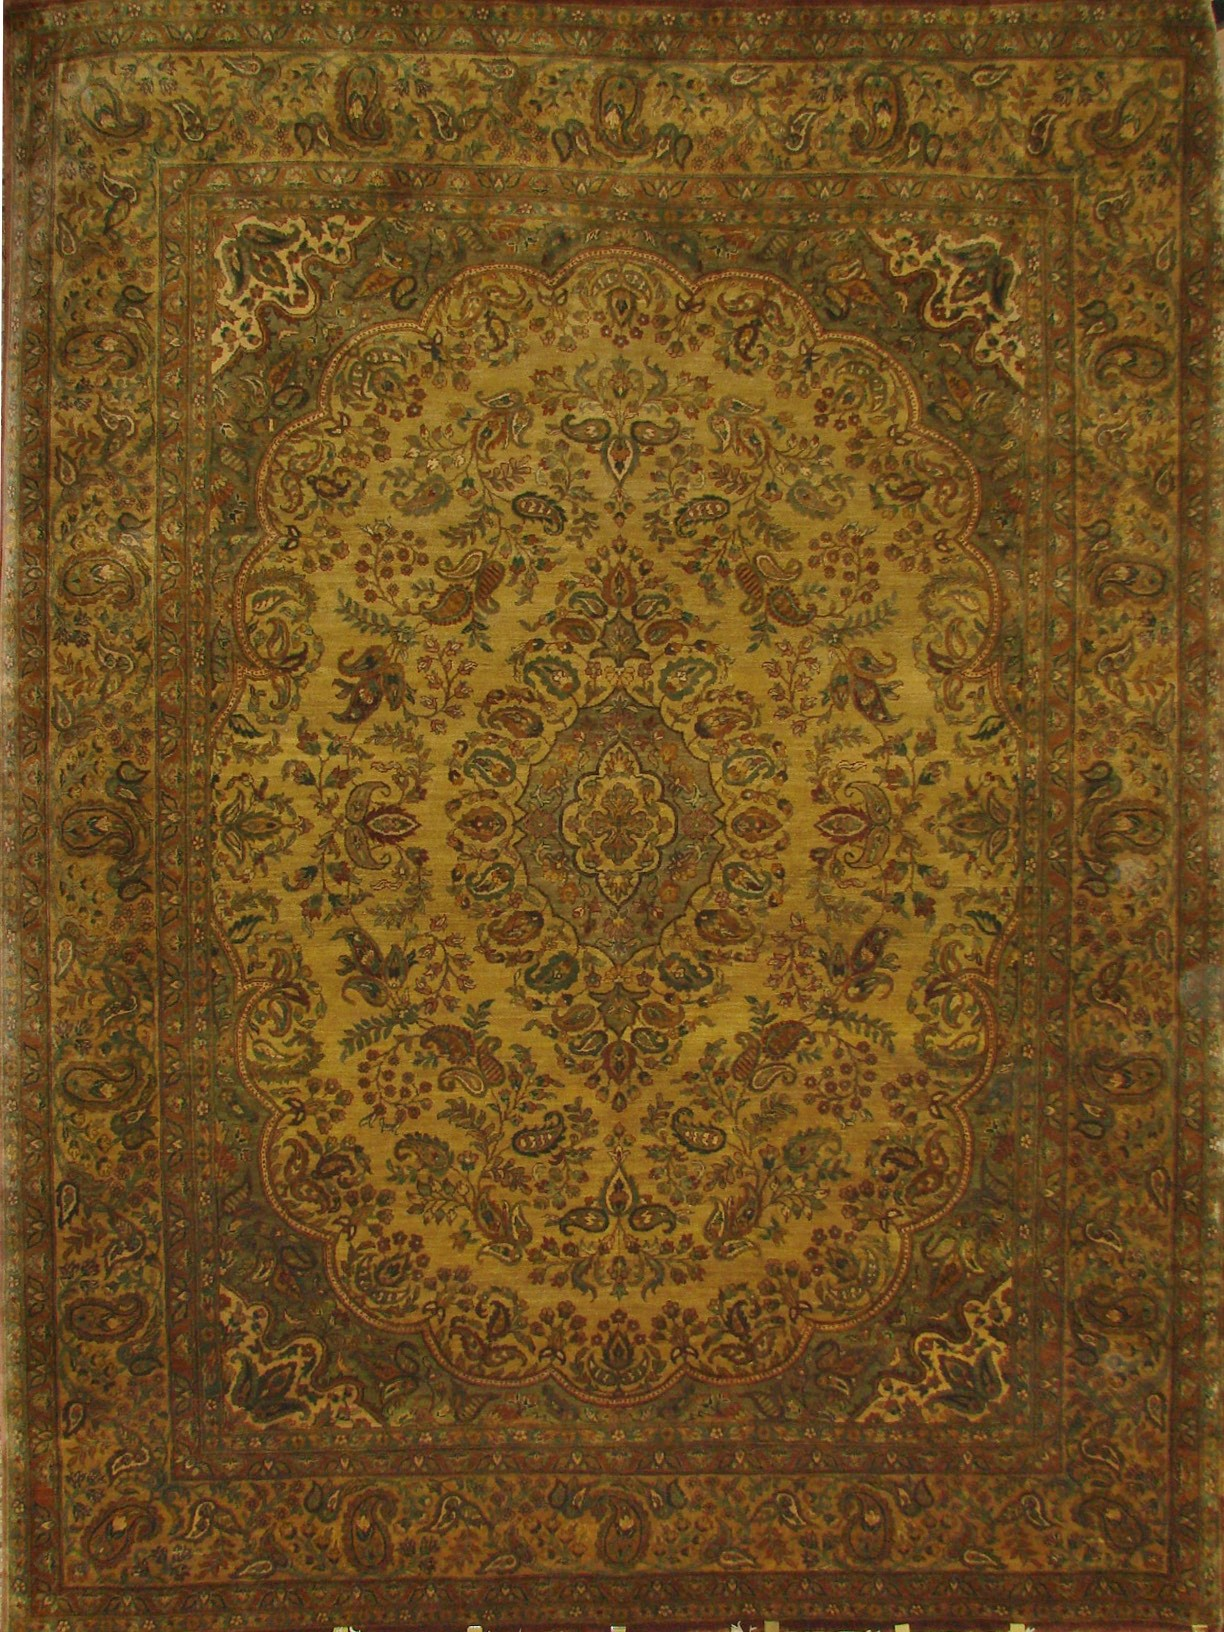 Clearance & Discount Rugs-MA-6-Oriental Designer Rugs